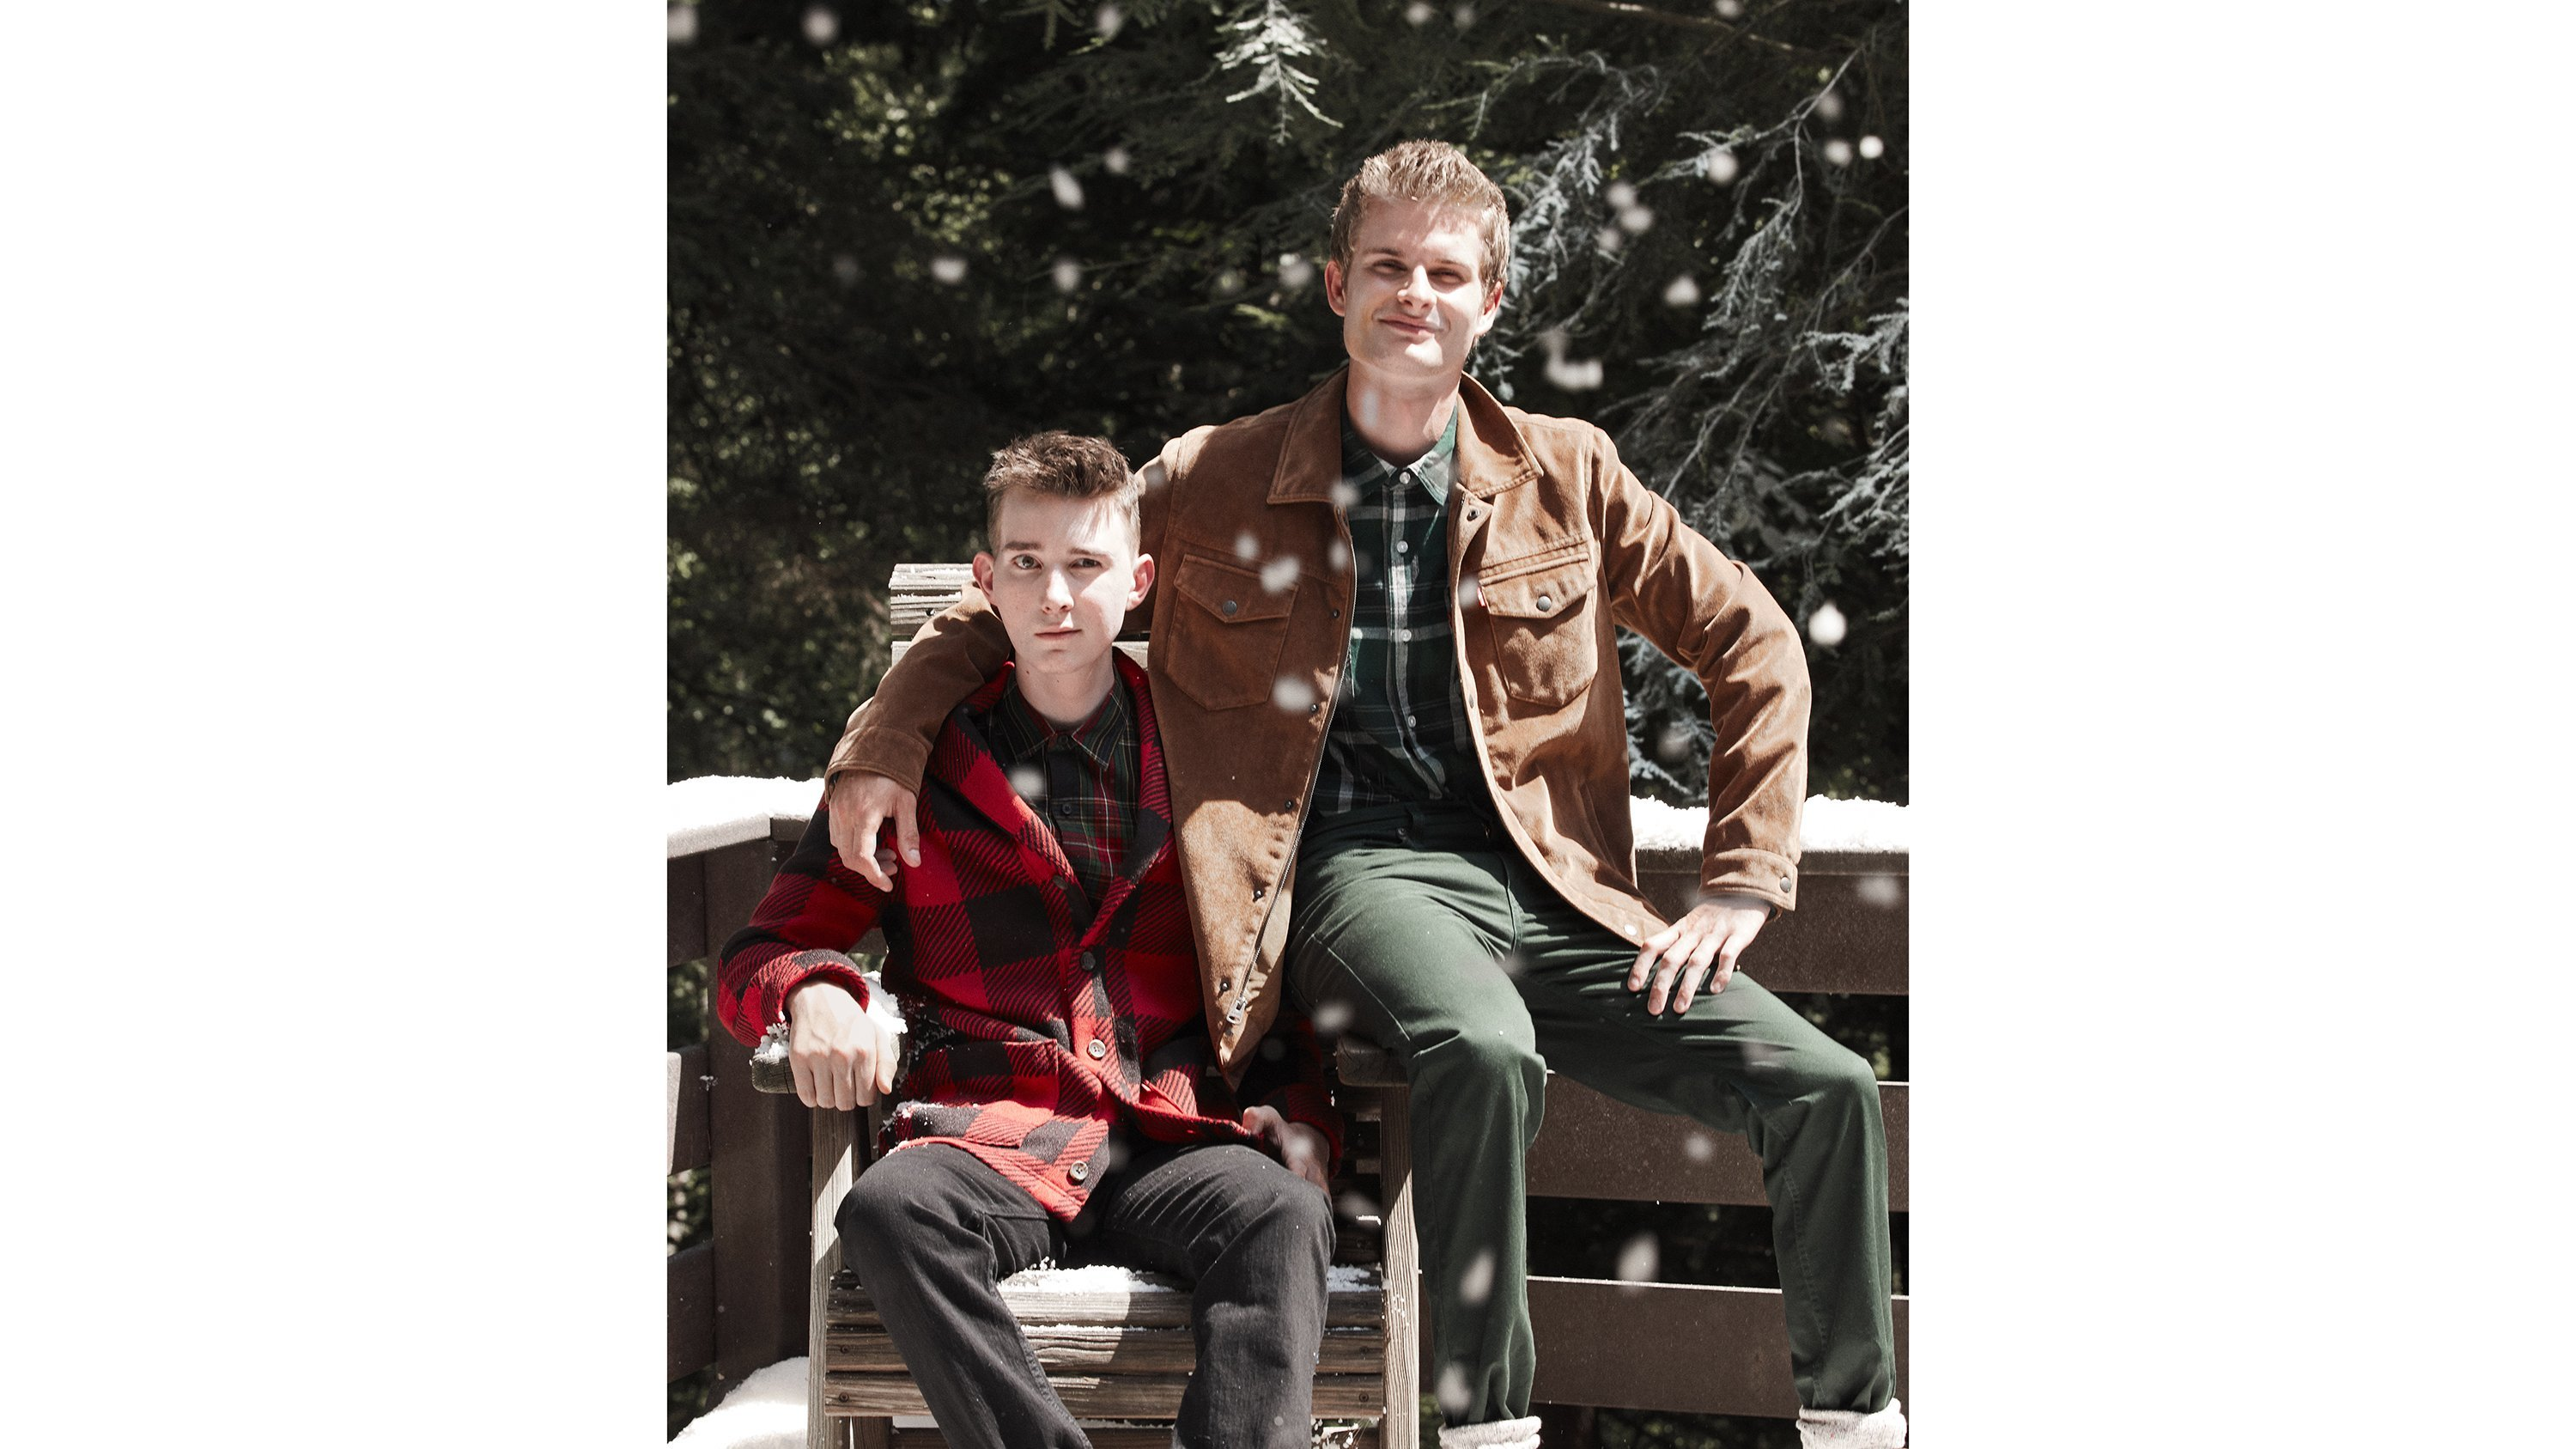 A teen with cancer dreamed of becoming a model. Macy's and Make-A-Wish made his dream come true